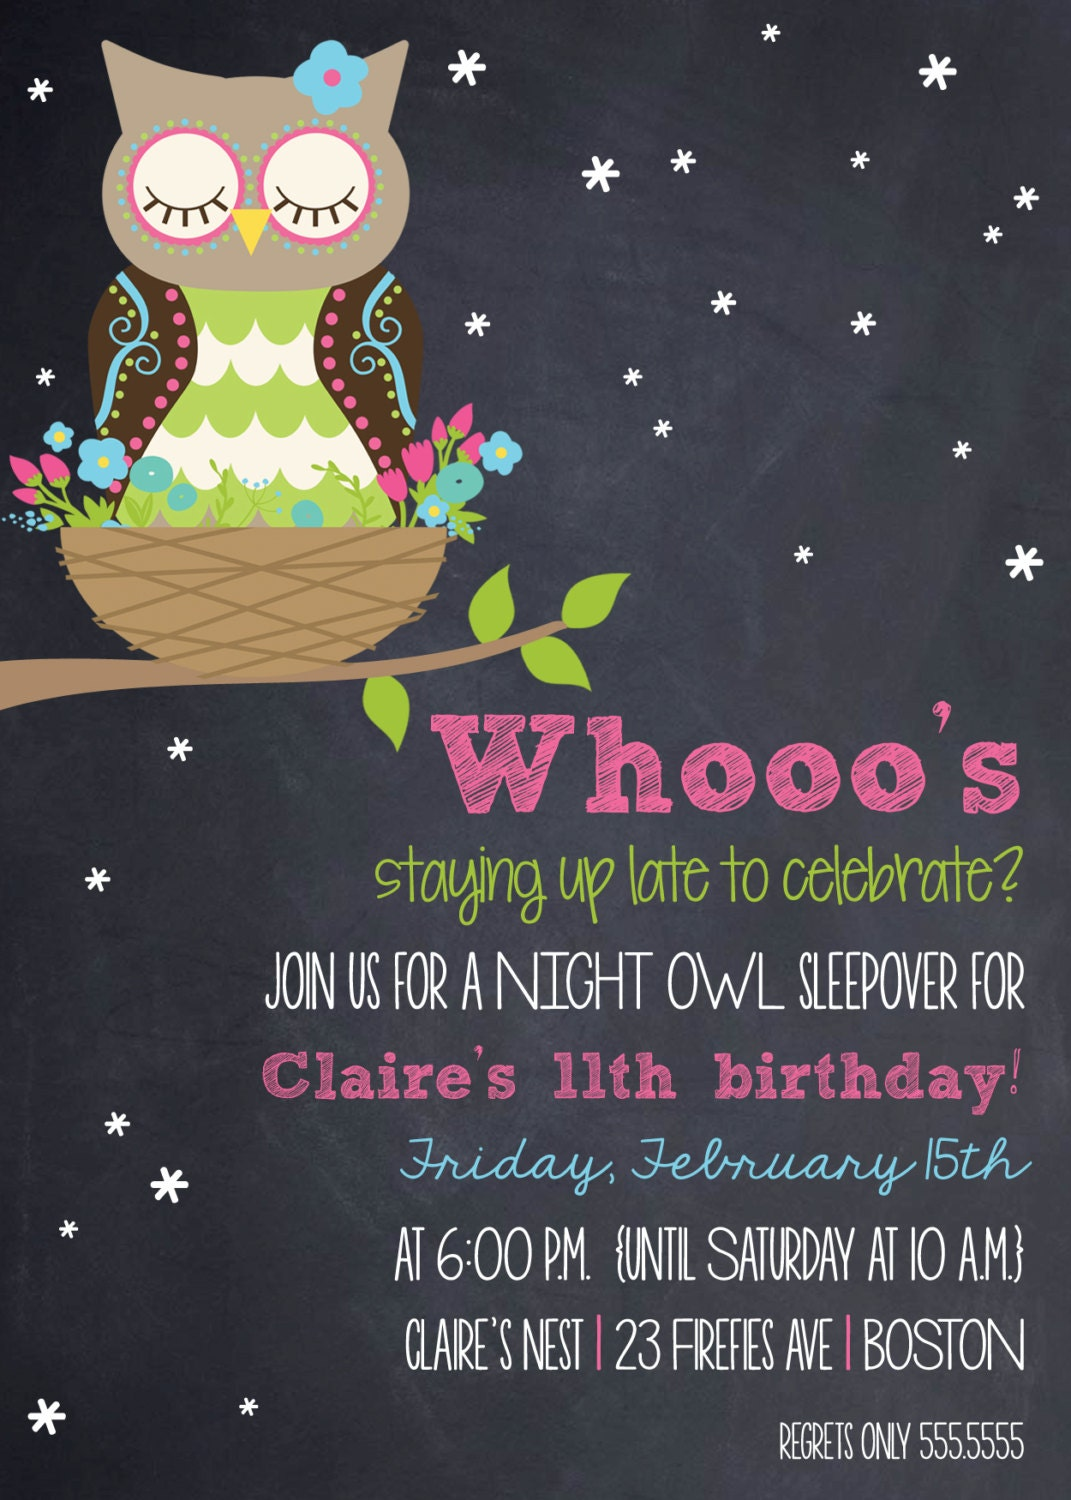 Owl Birthday Invitation Template for luxury invitation layout